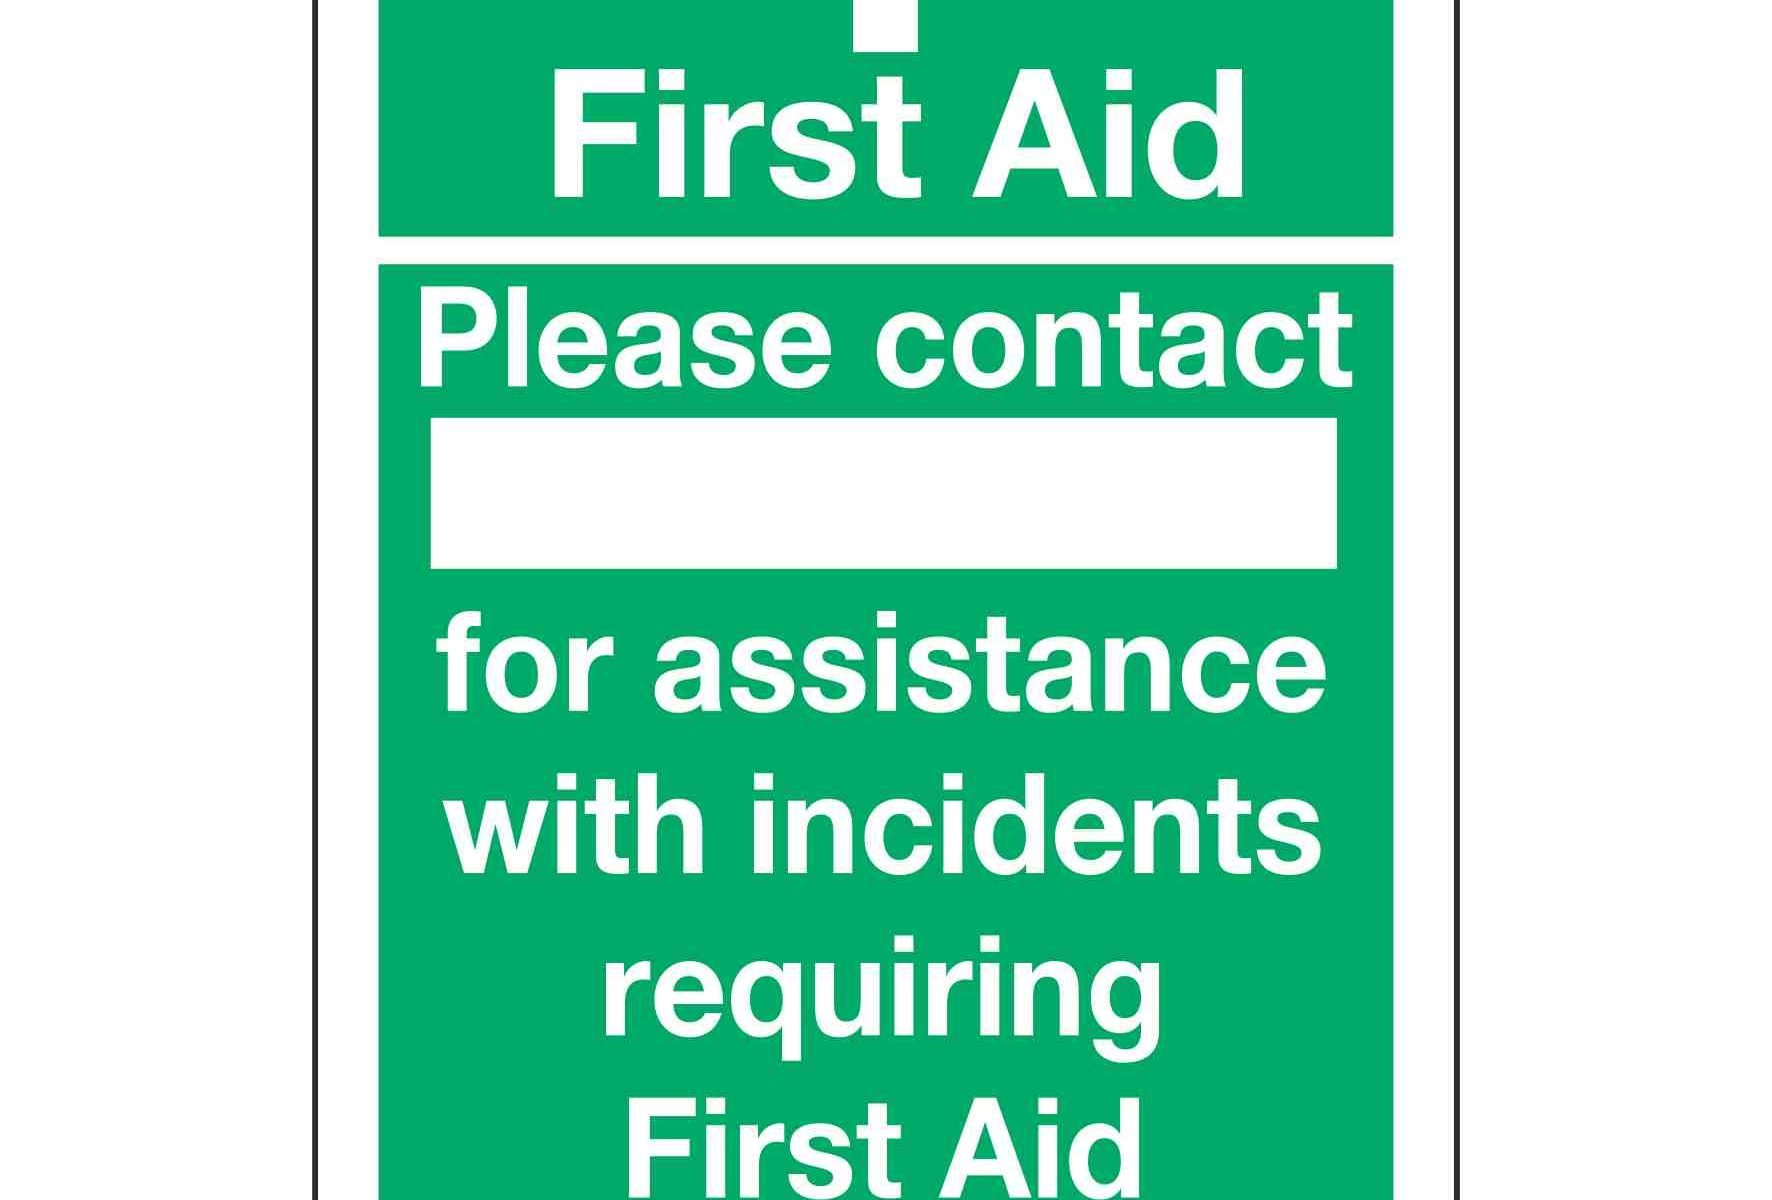 First Aid Please contact for assistance with incidents requiring First Aid Treatment